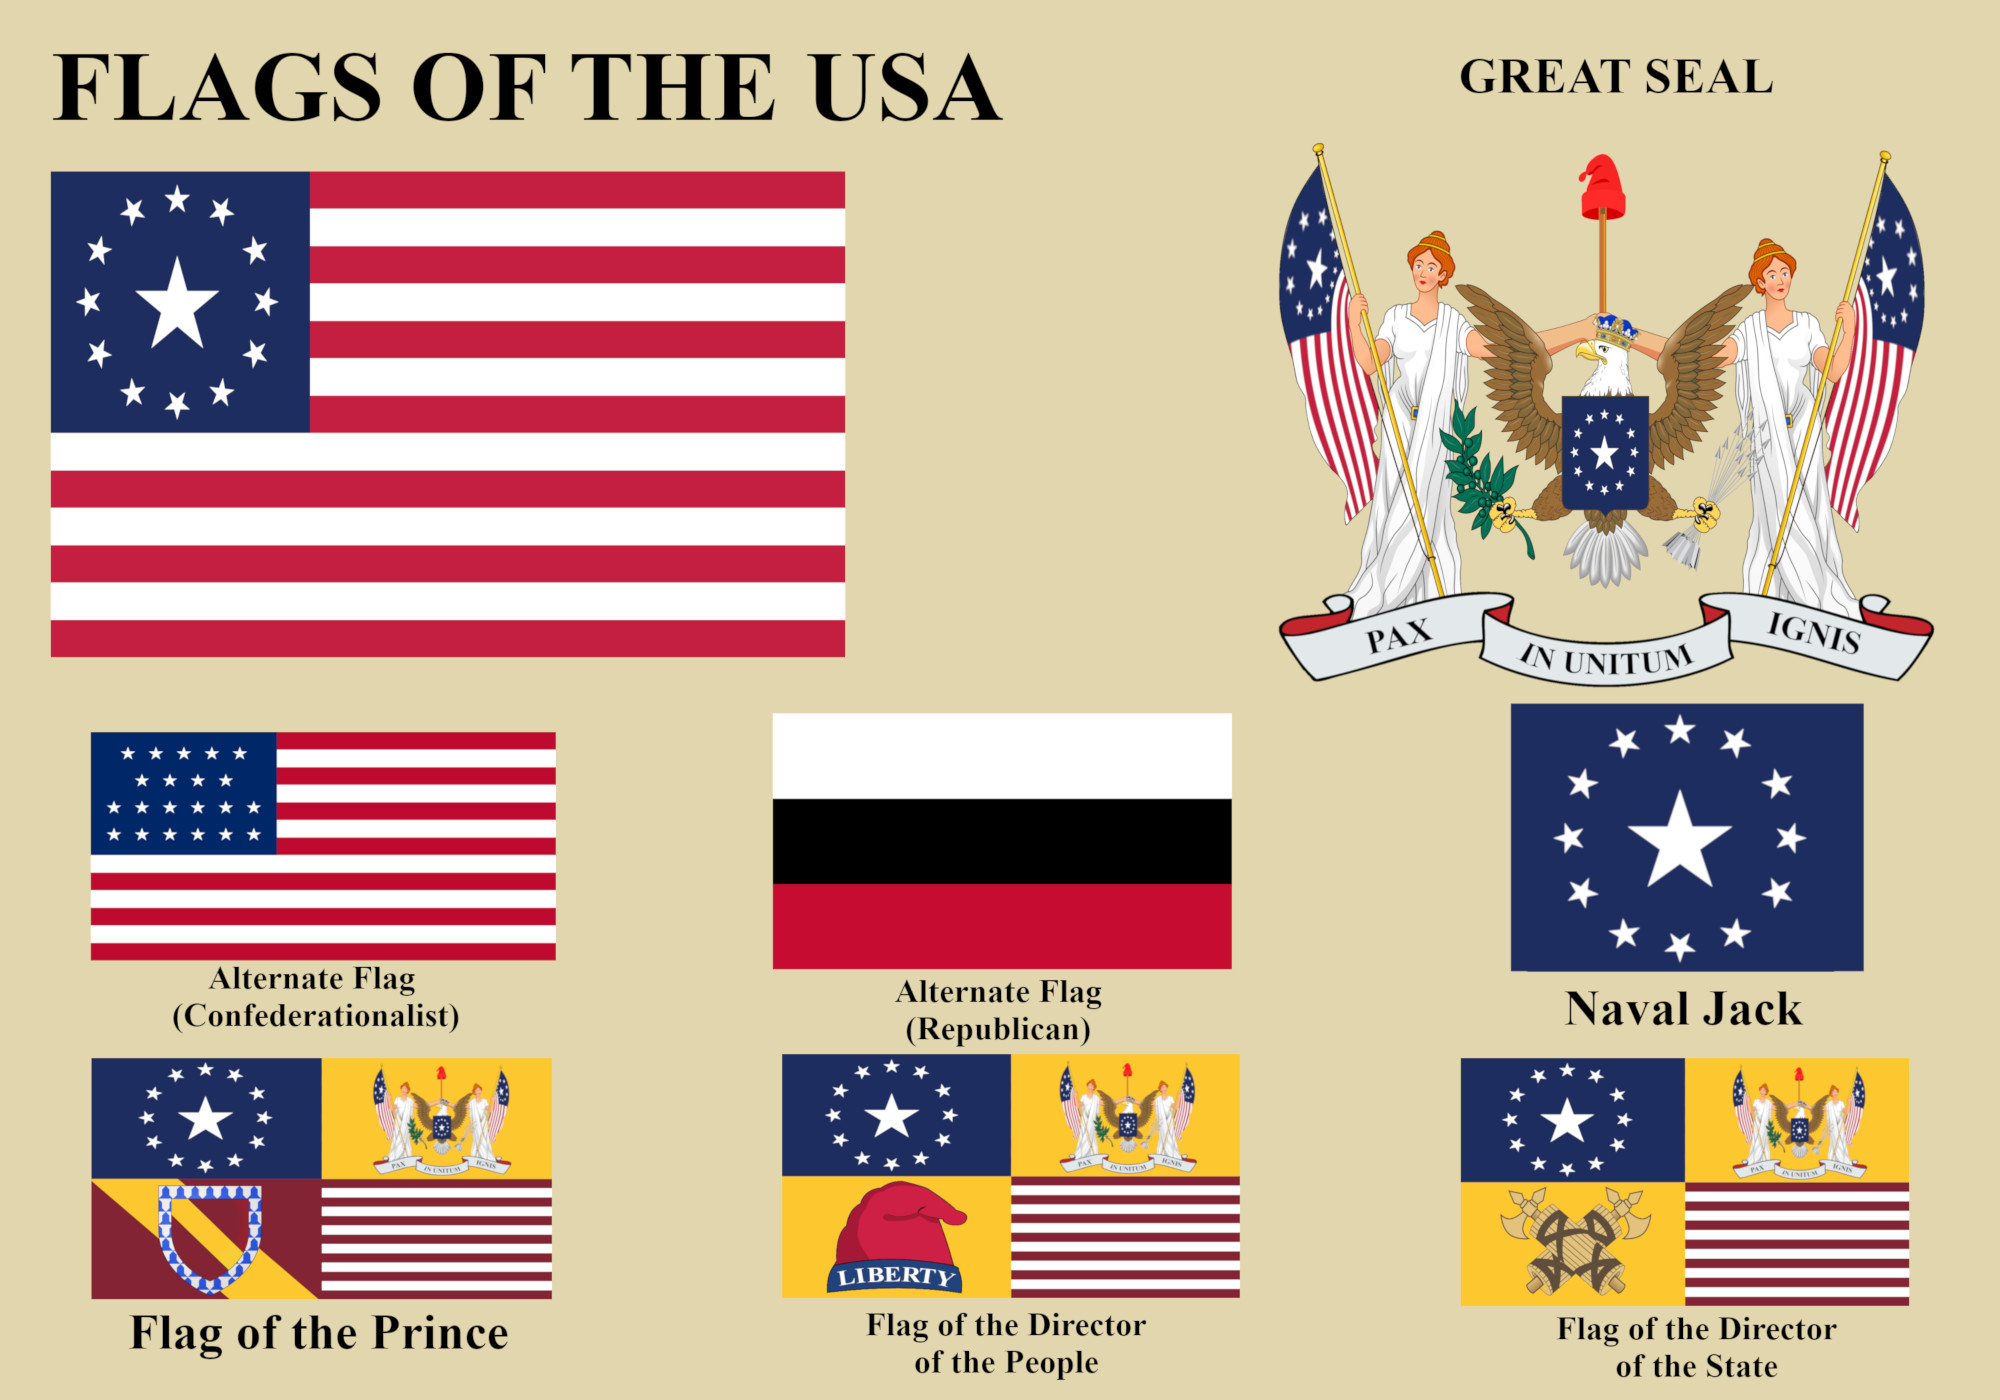 Flag Diagram.jpg